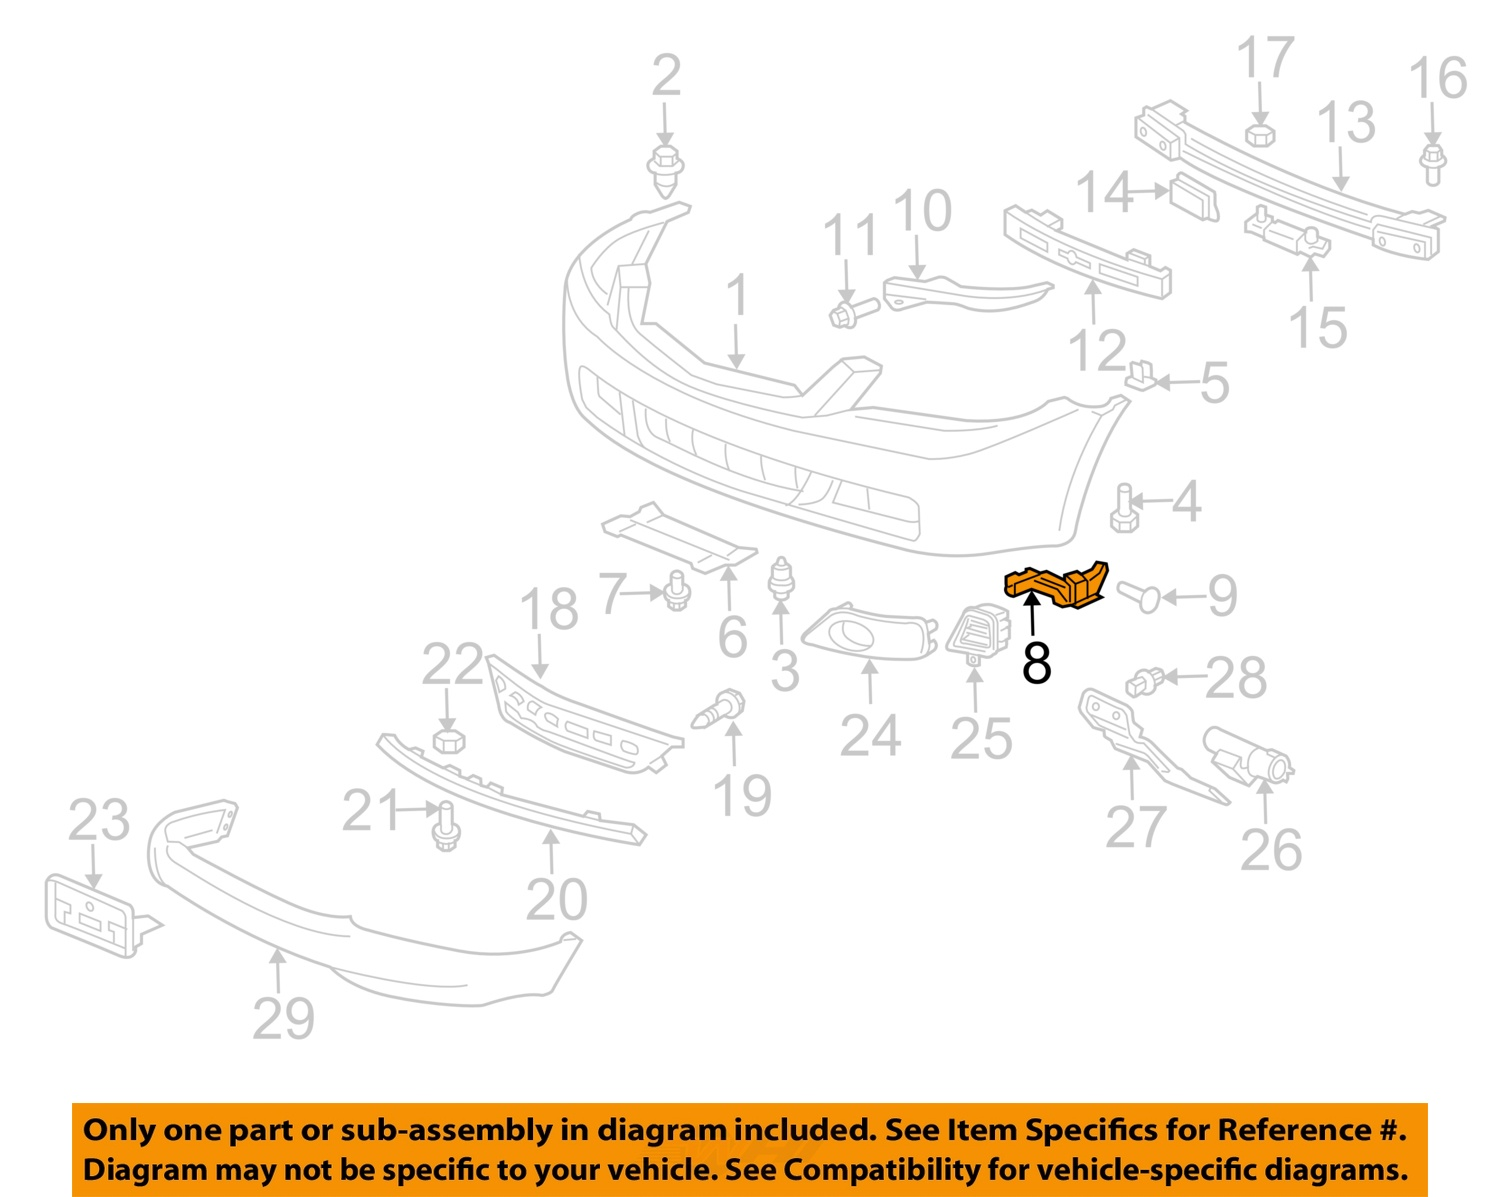 Acura honda oem 04 08 tsx front bumper spacer support bracket left 8 on diagram only genuine oe factory original item pooptronica